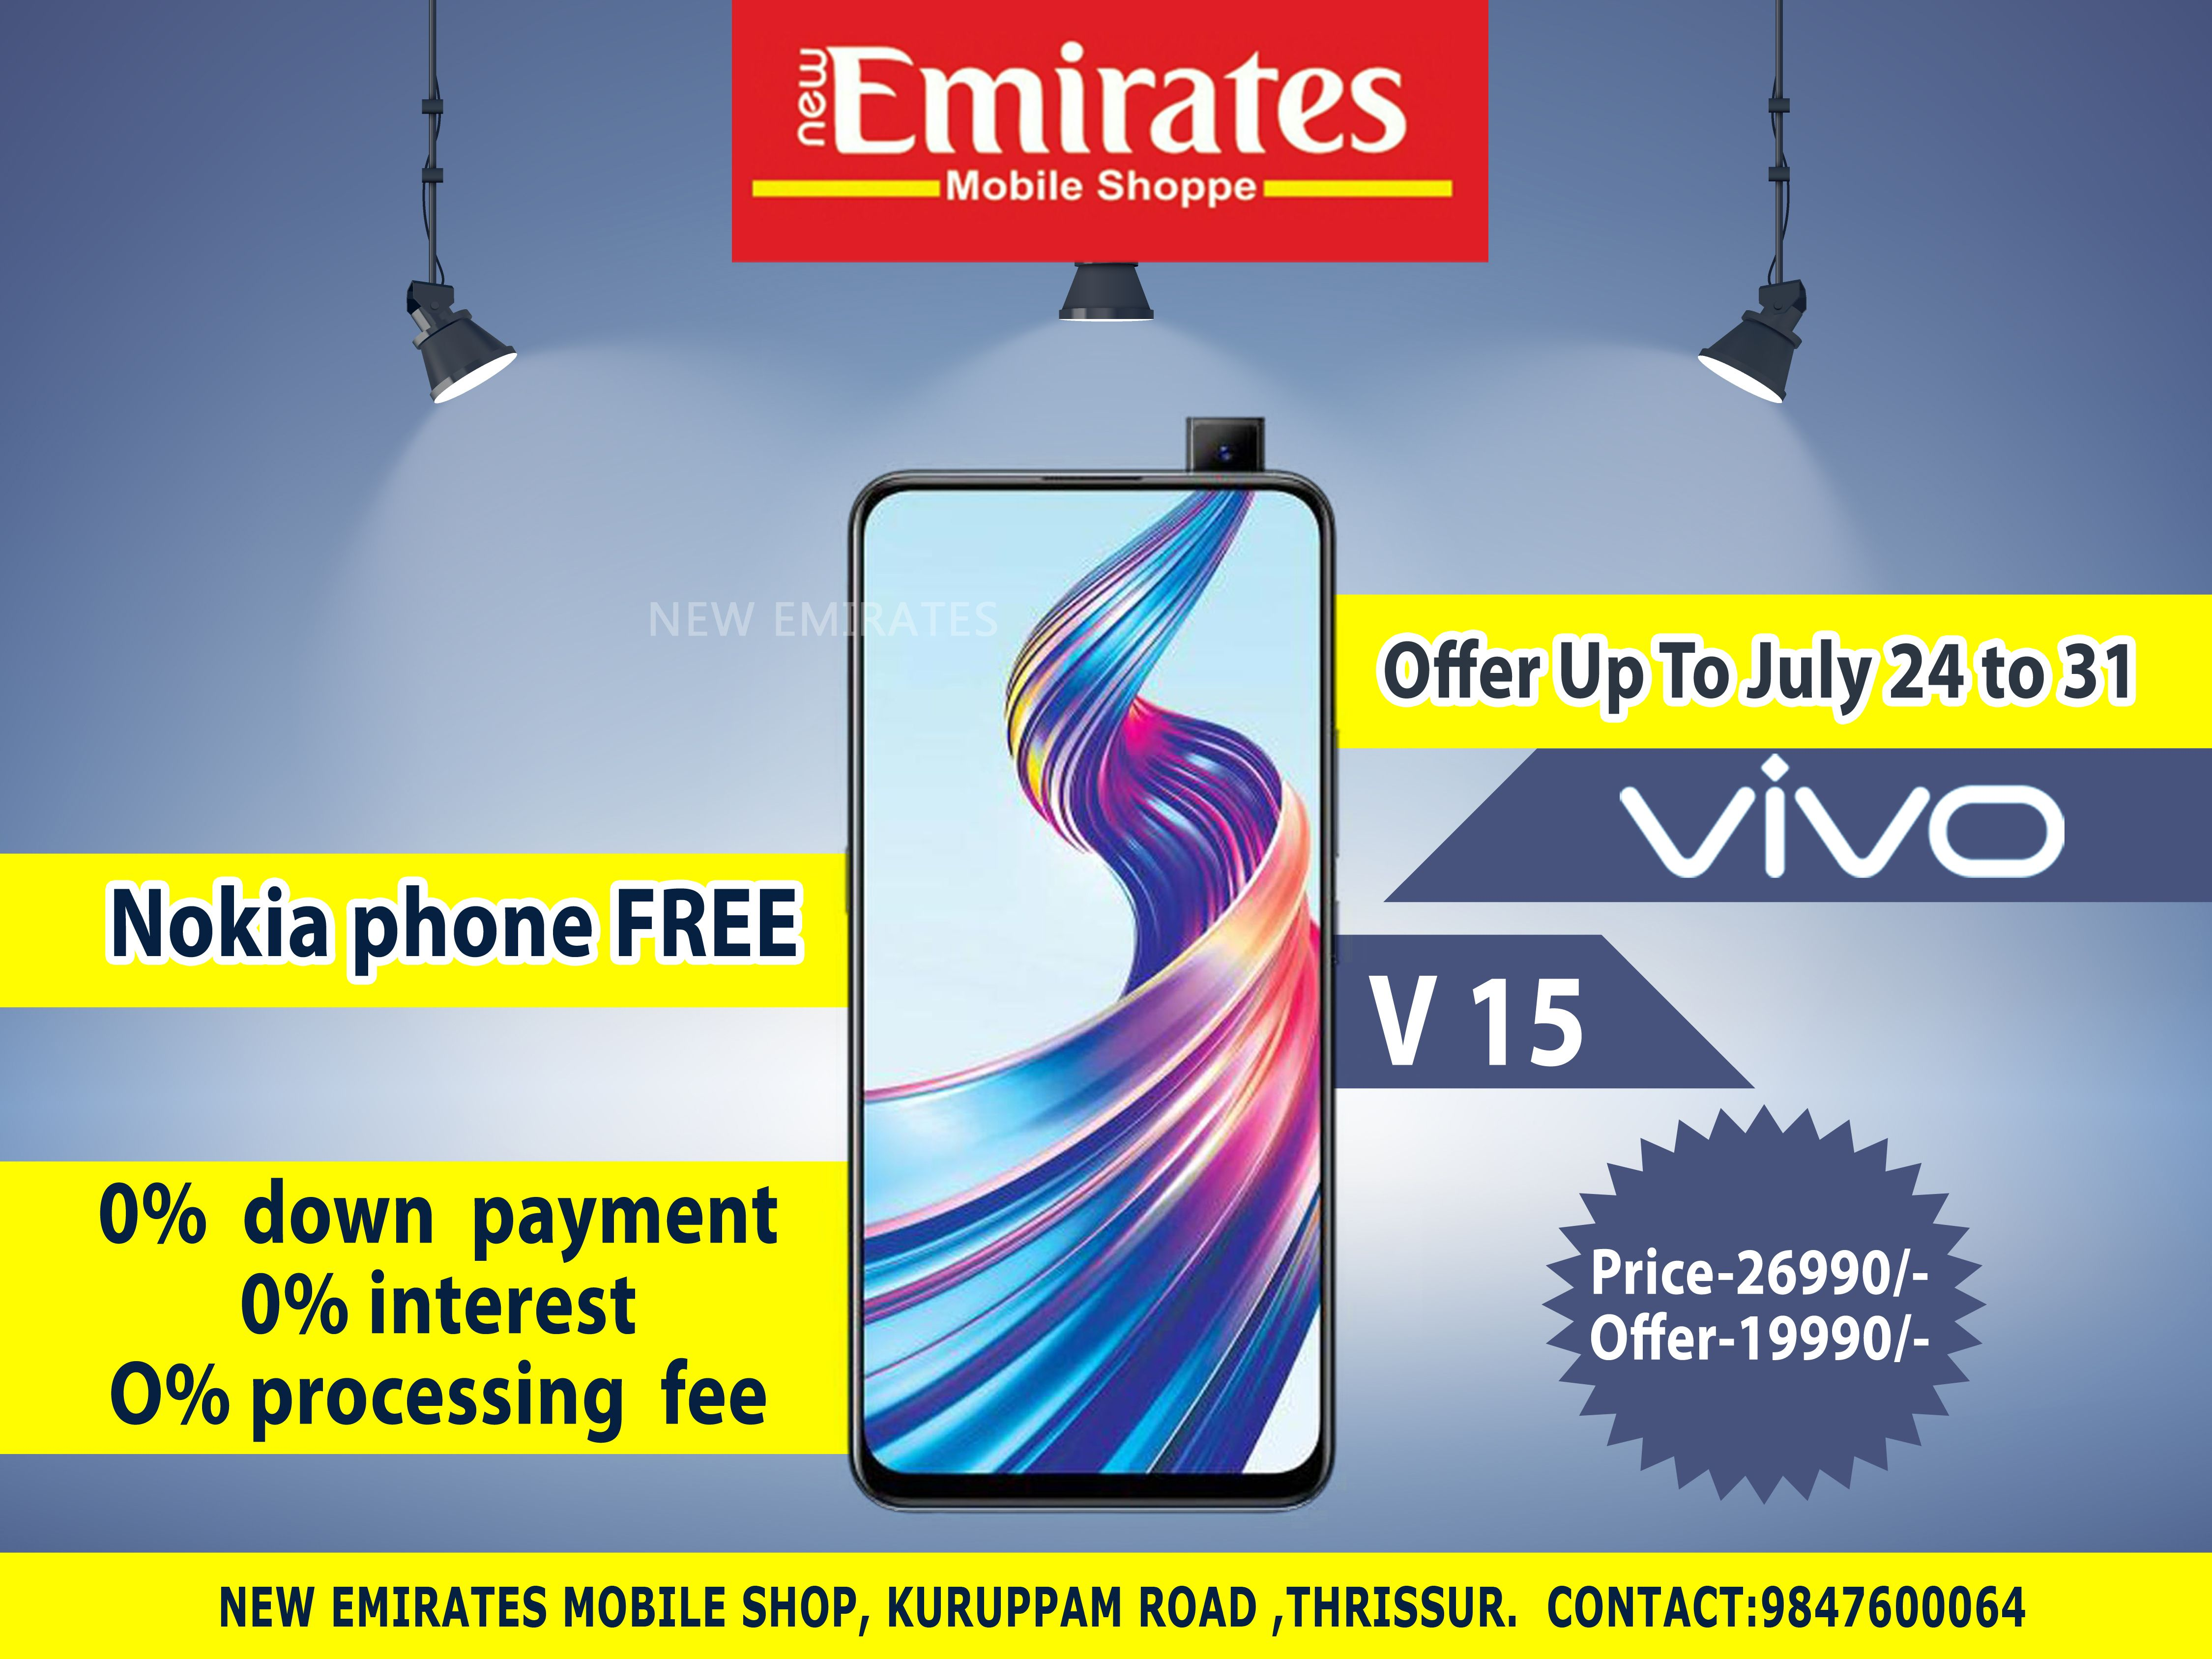 #Vivo V15 Price: 26,990/- Offer Price: 19,990/-  Nokia Phone Free  0% Down Payment 0% Interest  0% Processing Fee  OUR SHOP NEW EMIRATES MOBILE SHOP KURUPPAM ROAD THRISSUR.  CALL:9847600064  #mobileoffer #offer #nokiaoffer #vivooffer